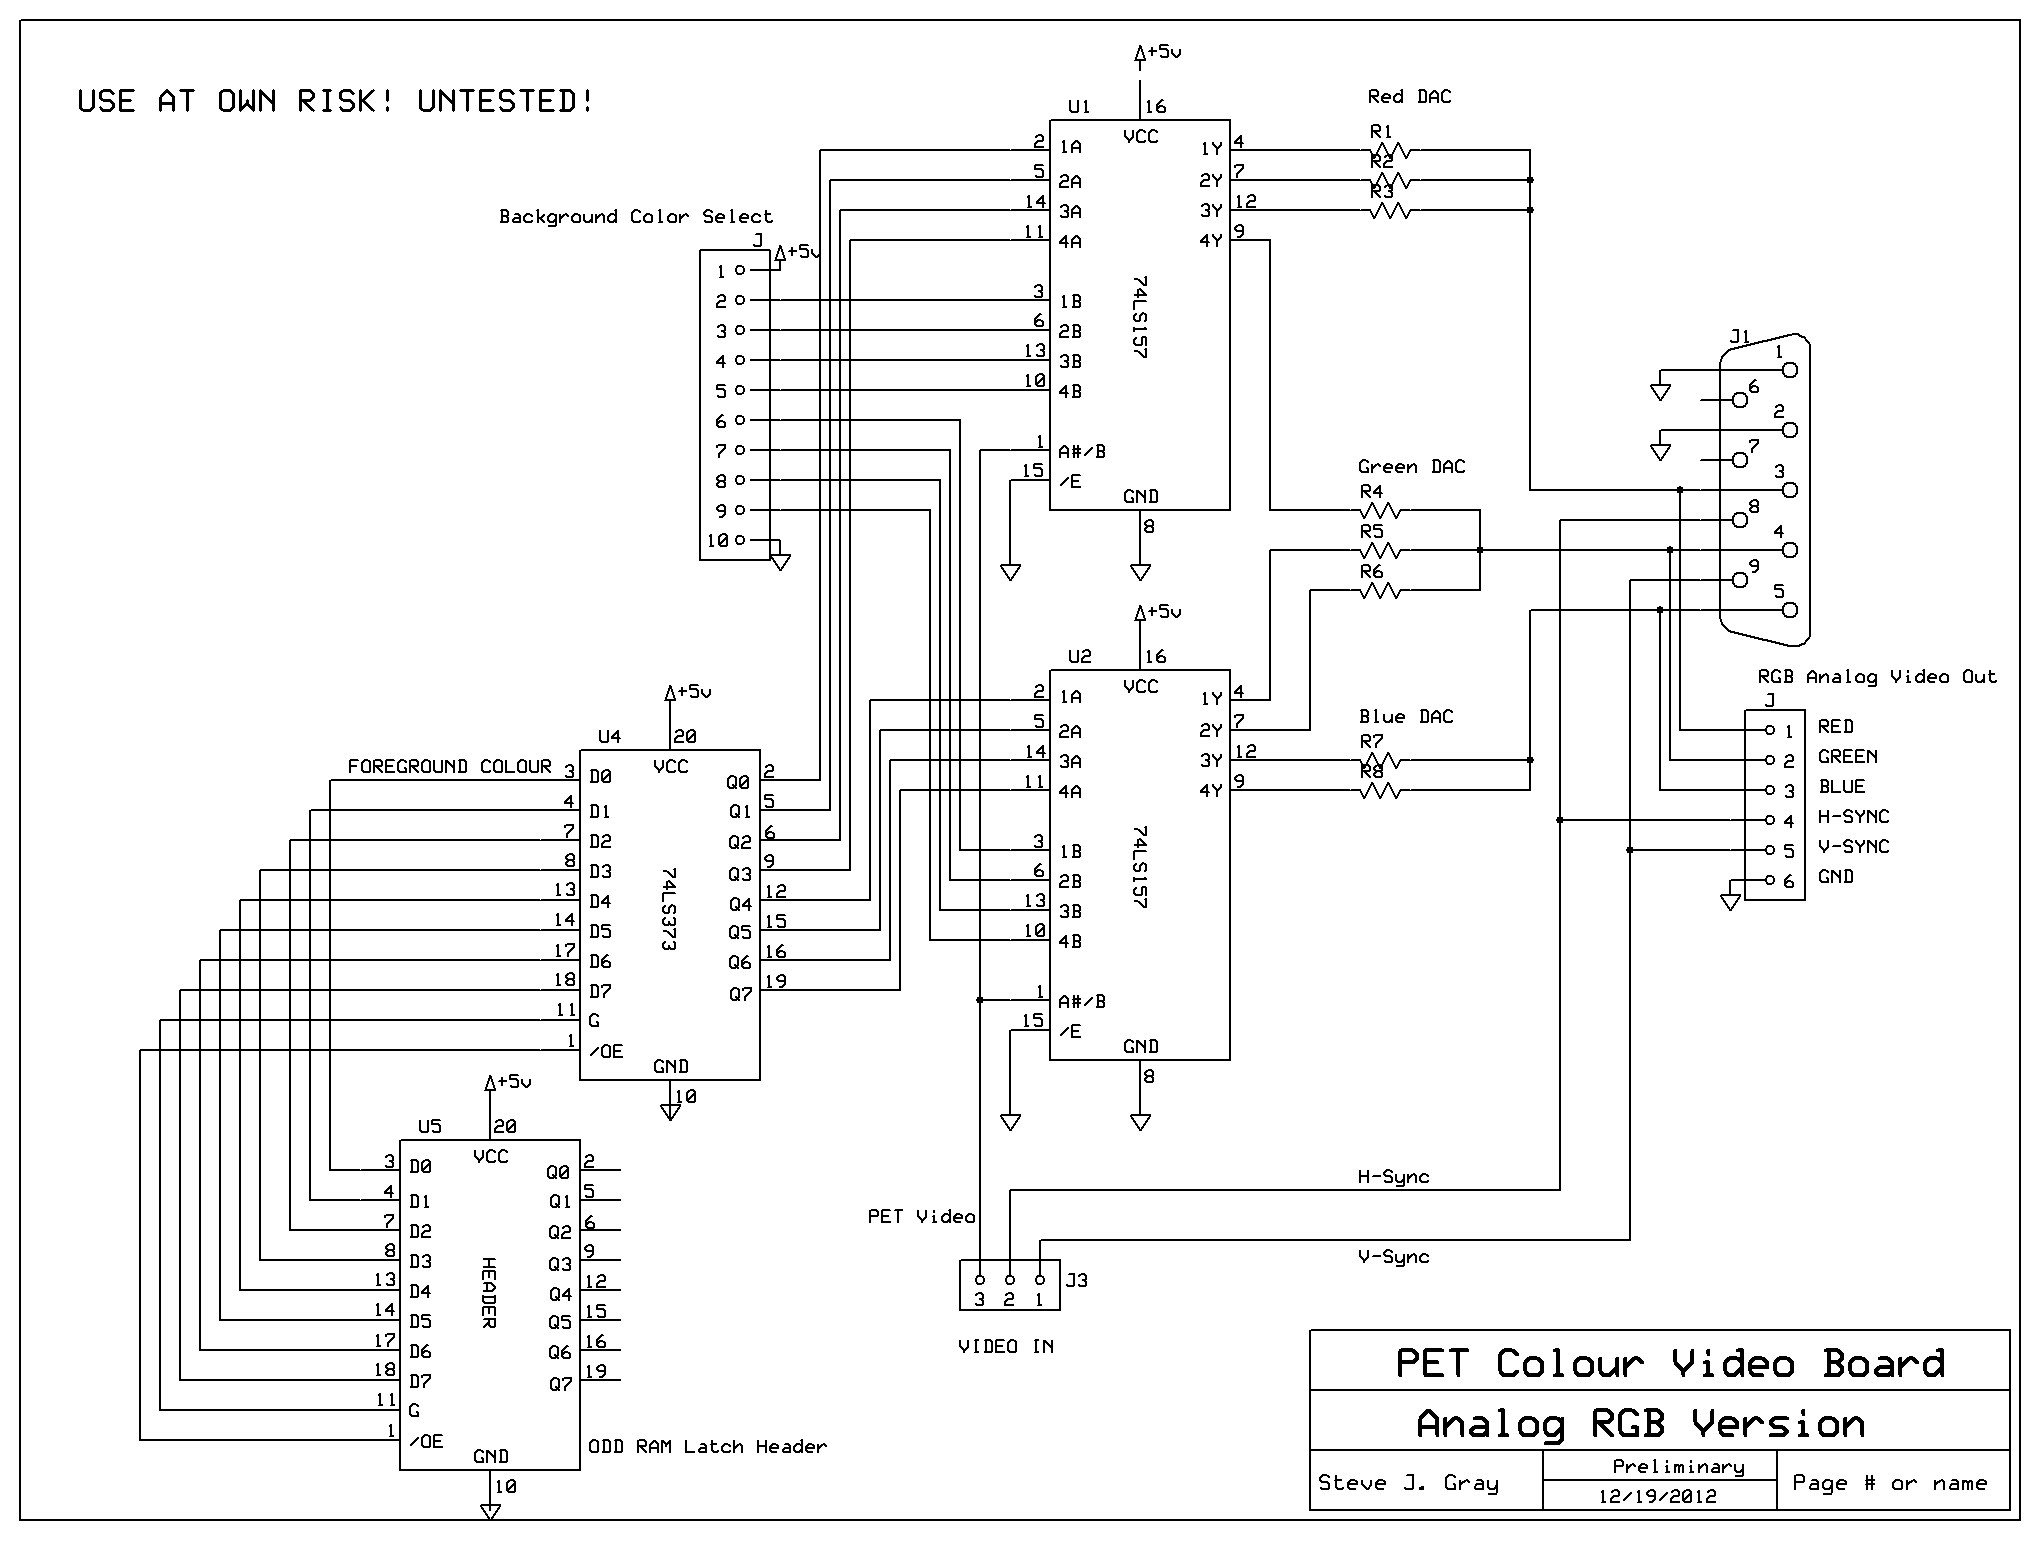 pic-a-schematic-v1.bmp V1